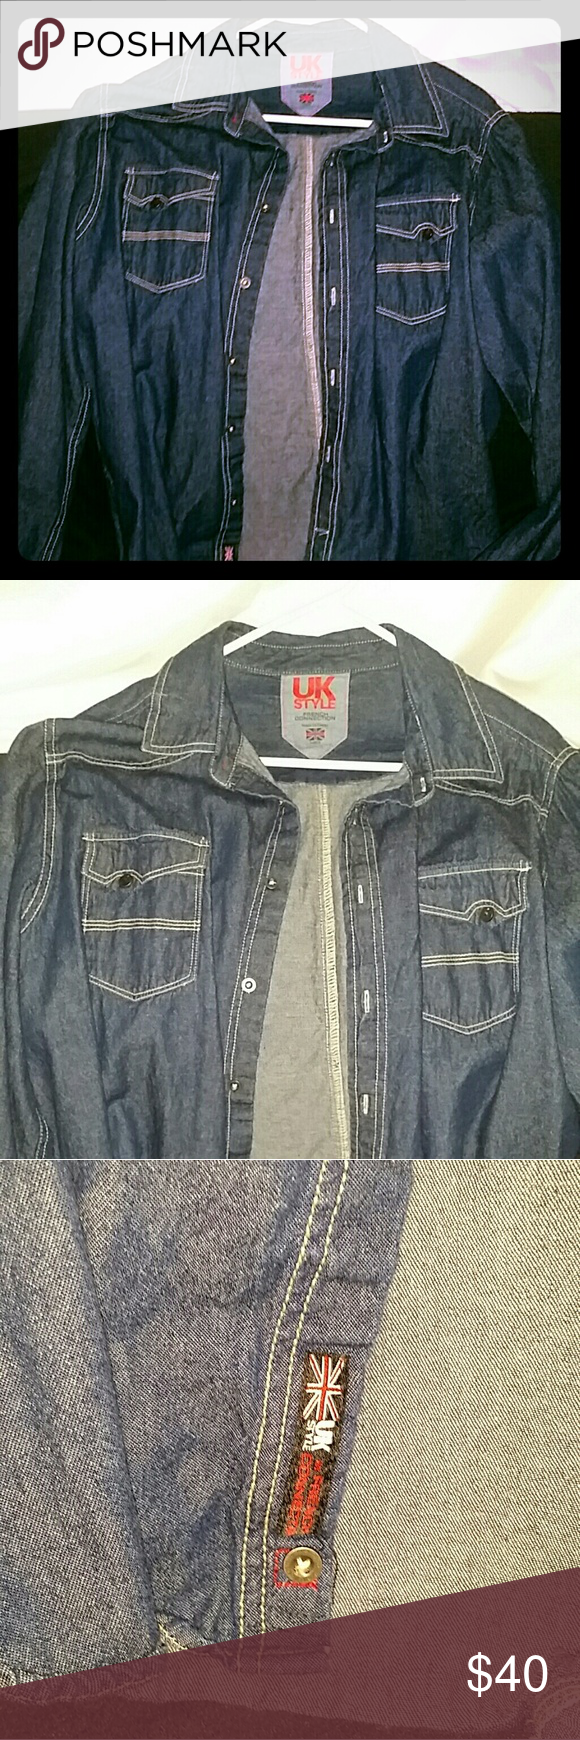 UK Style French Connection Denim Button Down Like new condition worn twice mens Denim Button Down size large color indigo great button down that looks like a jean jacket would be perfect with khakis or really nice pair of jeans for a fun night or daytime lunch with khakis or white jeans UK STYLE Shirts Casual Button Down Shirts